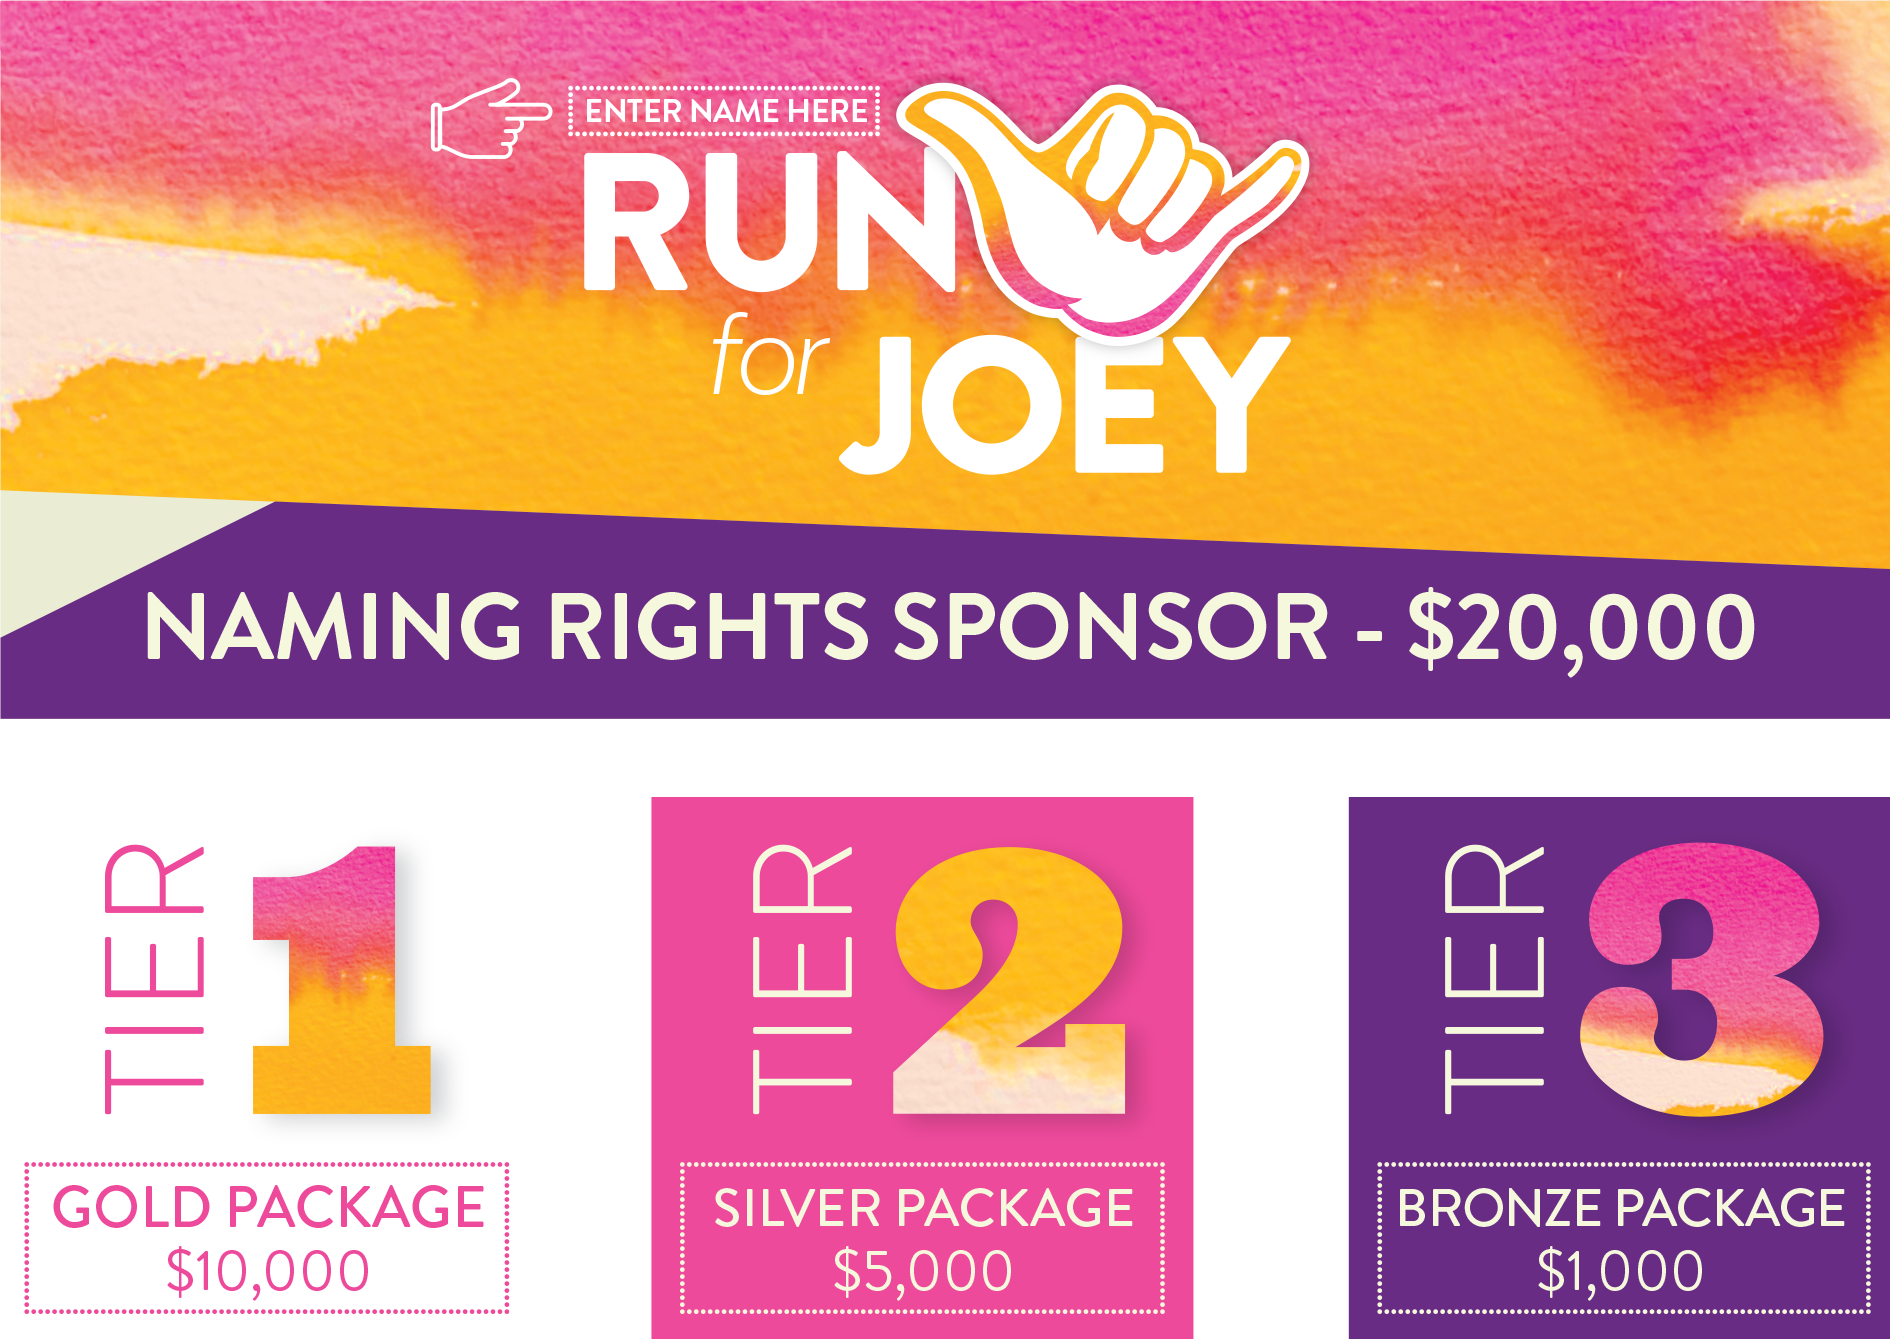 Run-For-Joey-Sponsors-Graphic.png